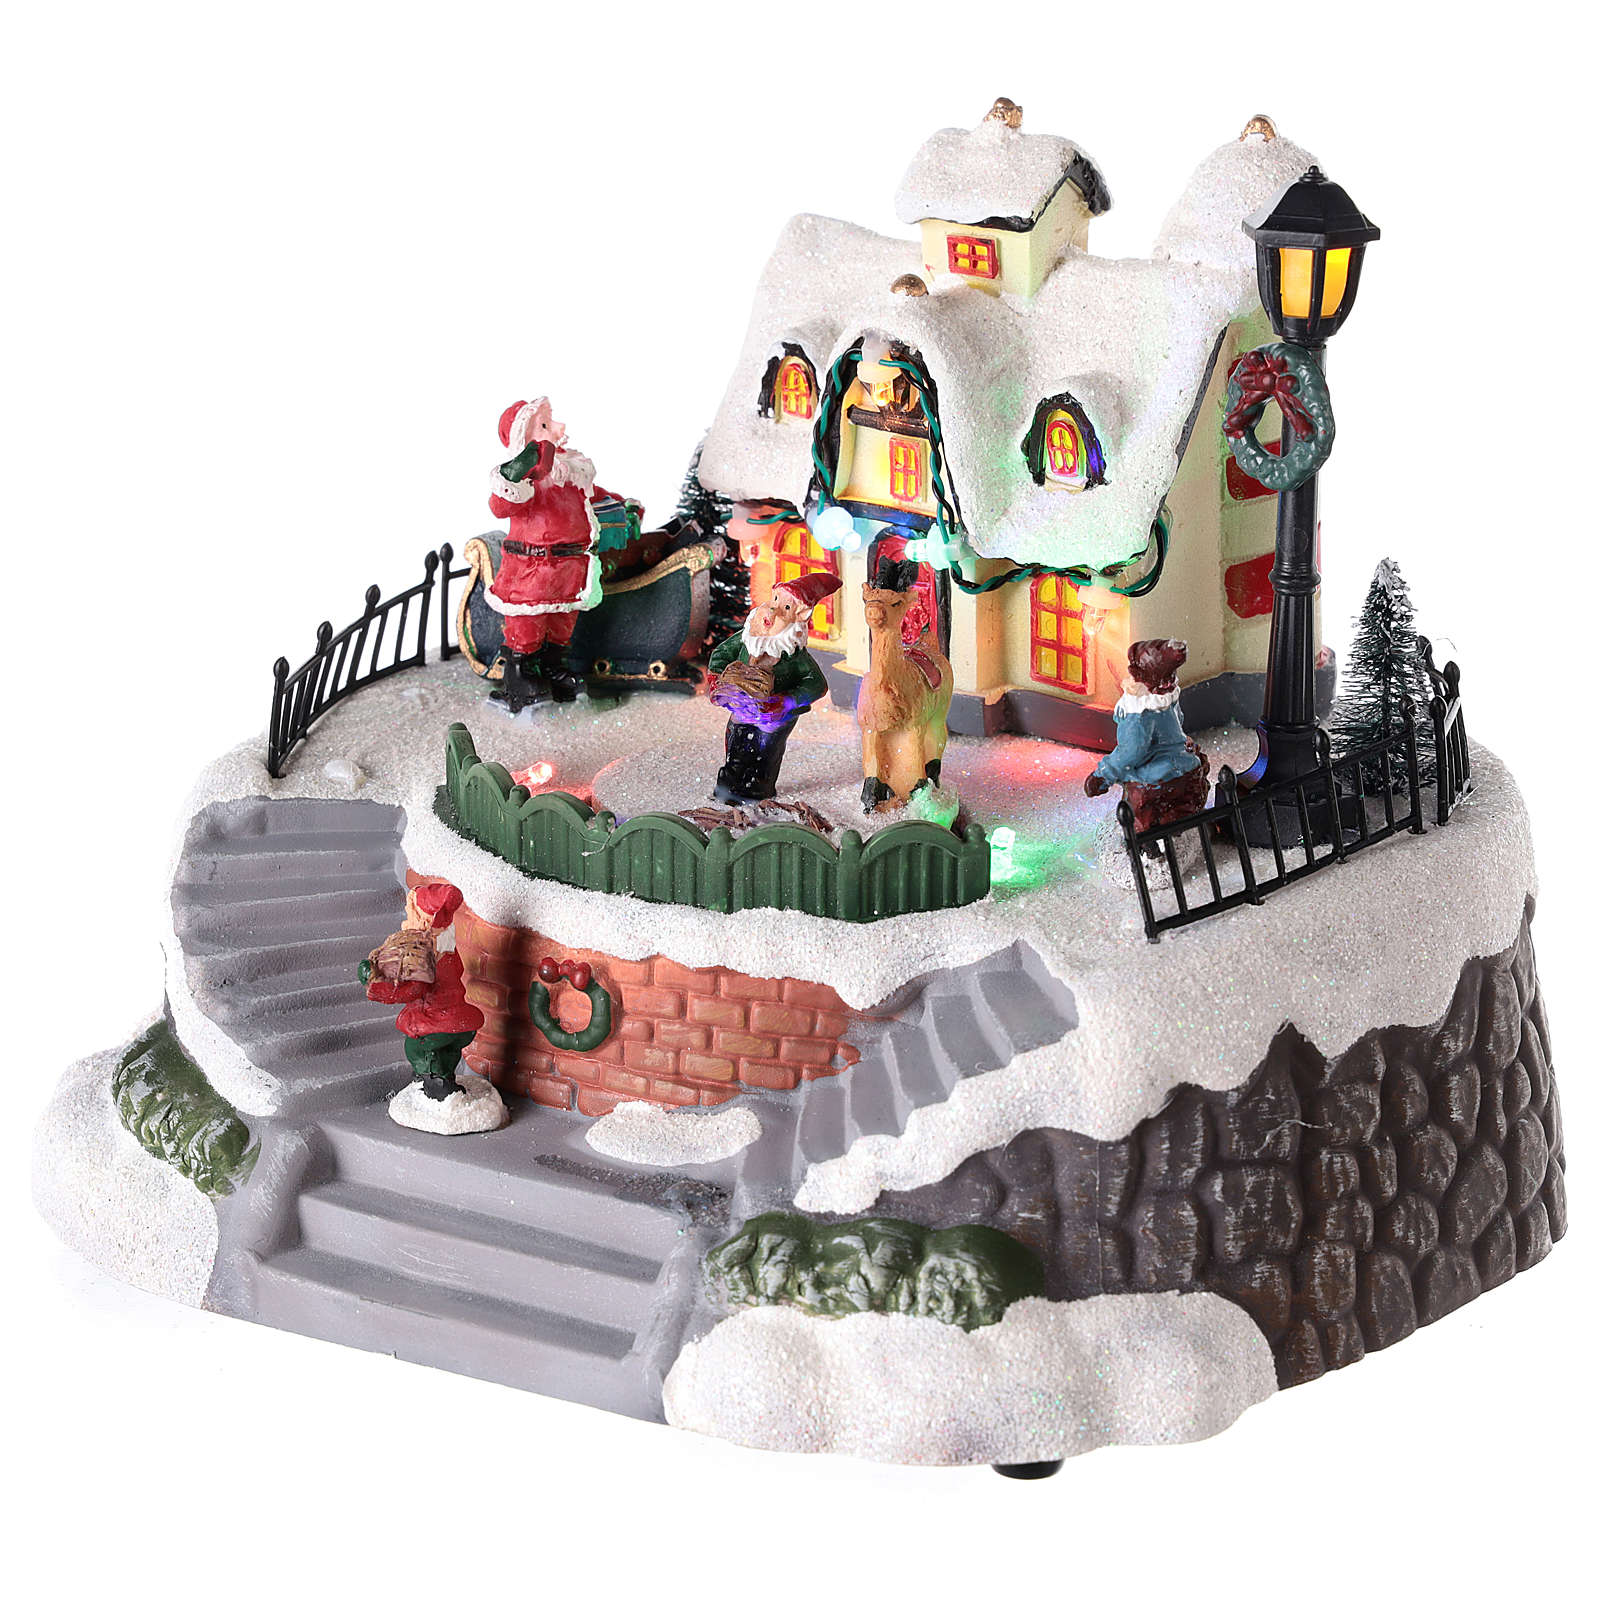 Santa's house with elves for village 15x20 cm 3